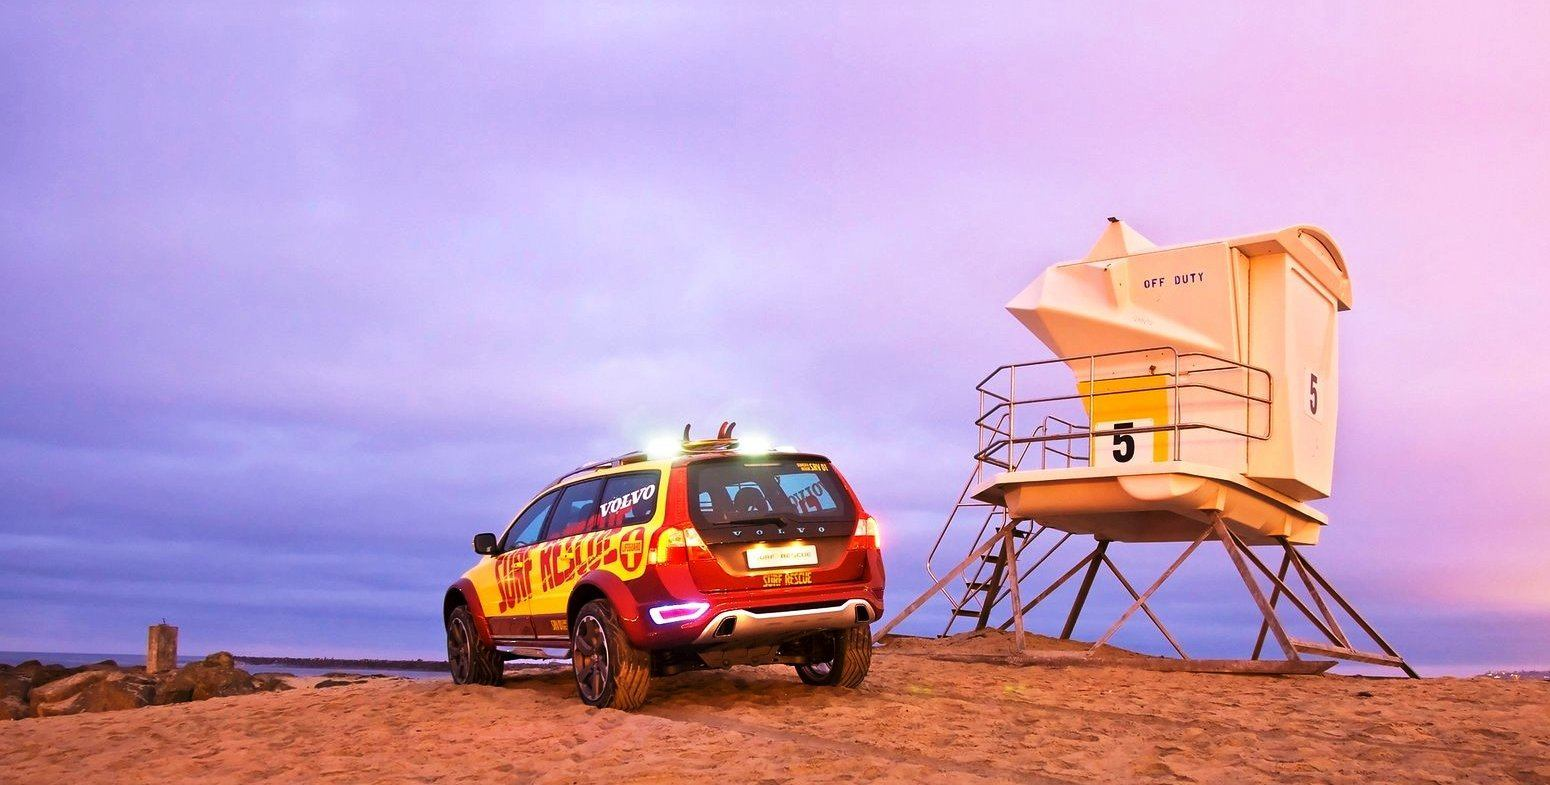 2005 Volvo XC70 AT and 2007 XC70 Surf Rescue are California Surf'n'Turf Dreams 29